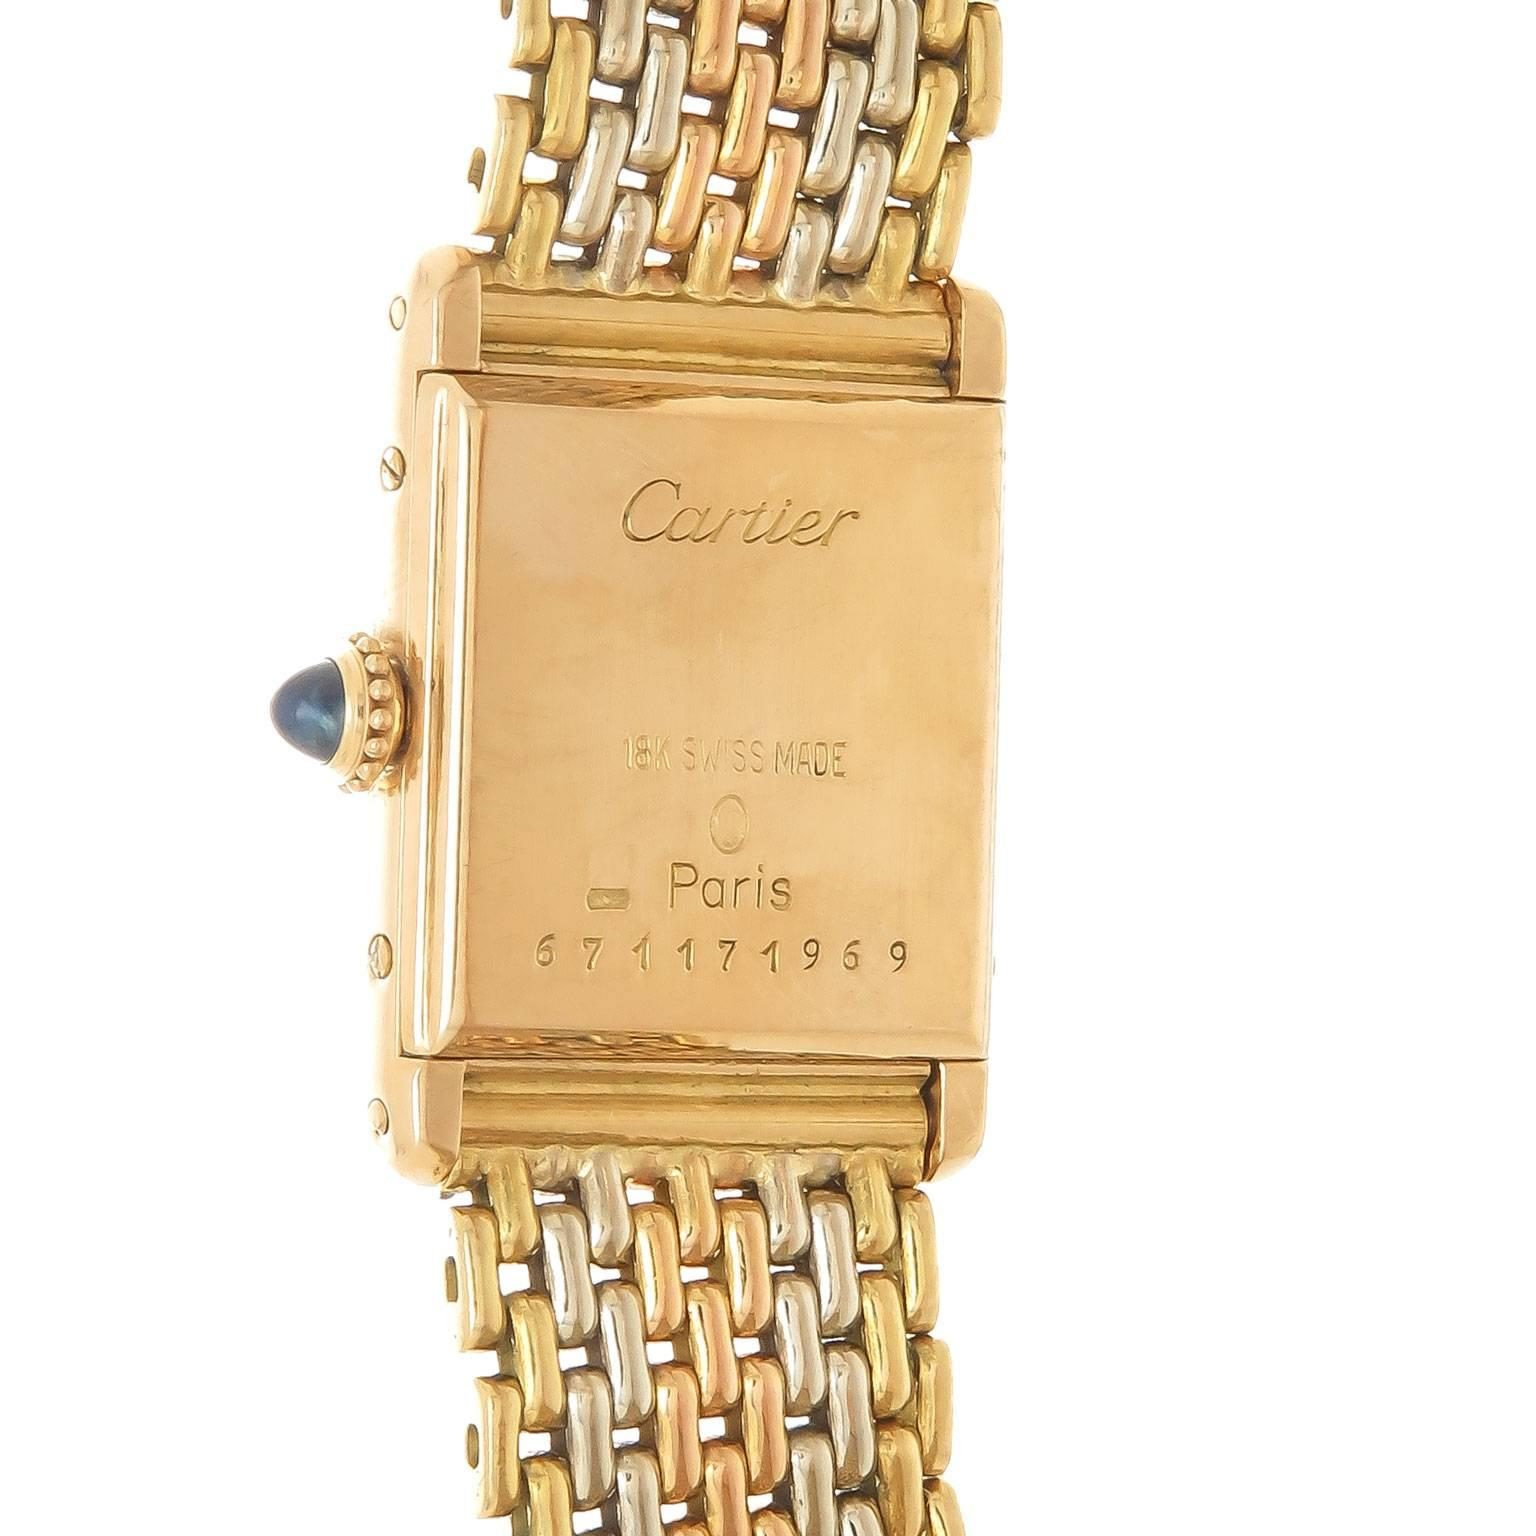 386e733c252a1 Cartier Gold Ladies Tank Mechanical Watch on Tri Color Gold Bracelet at  1stdibs